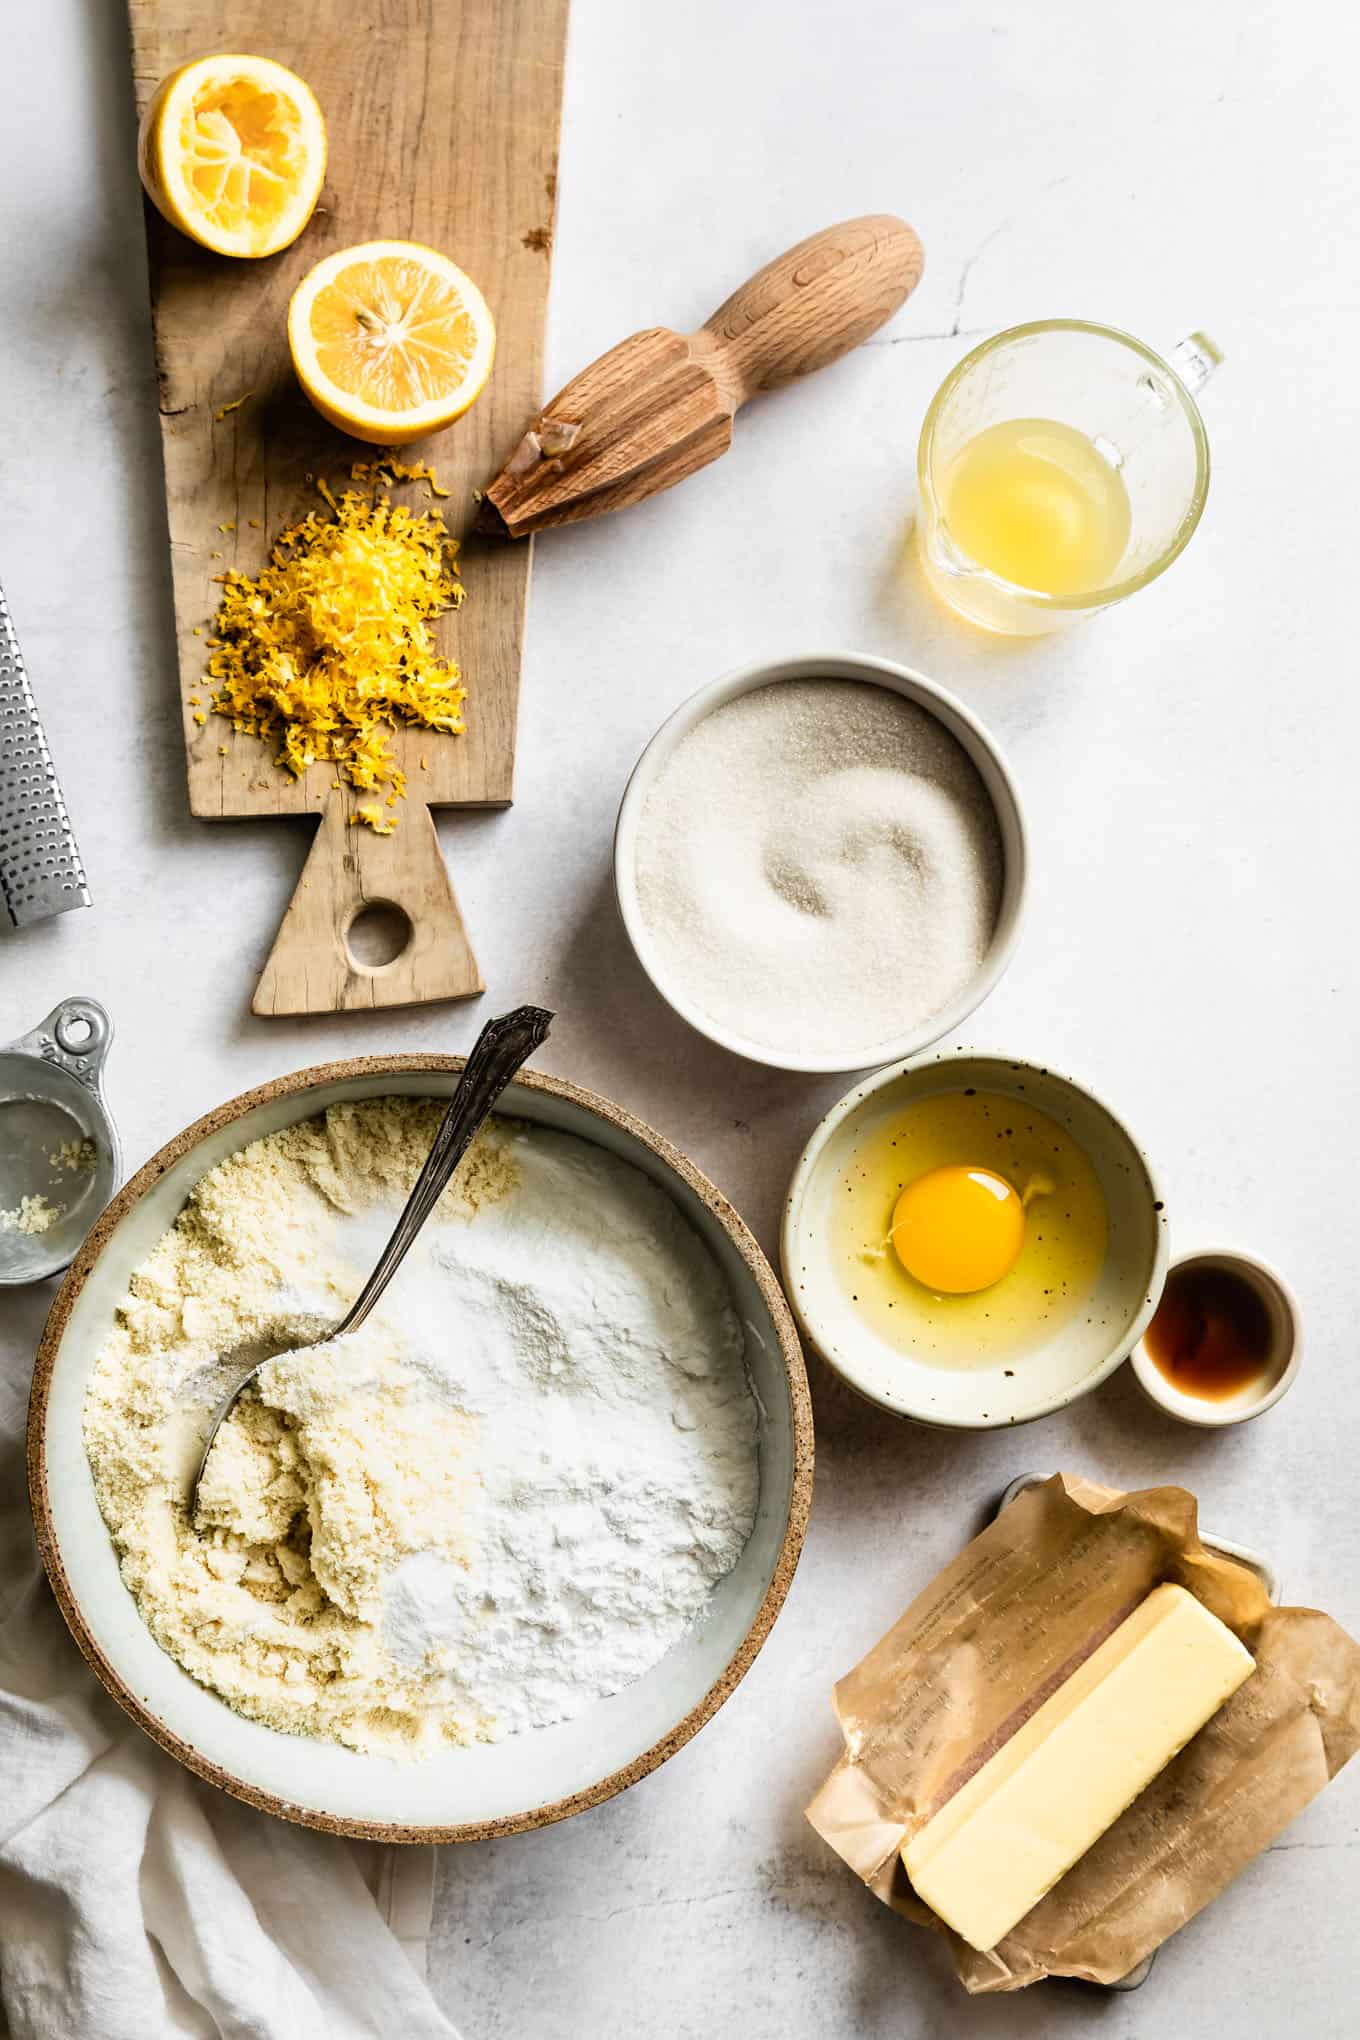 How to Make Gluten-Free Lemon Cookies Ingredients